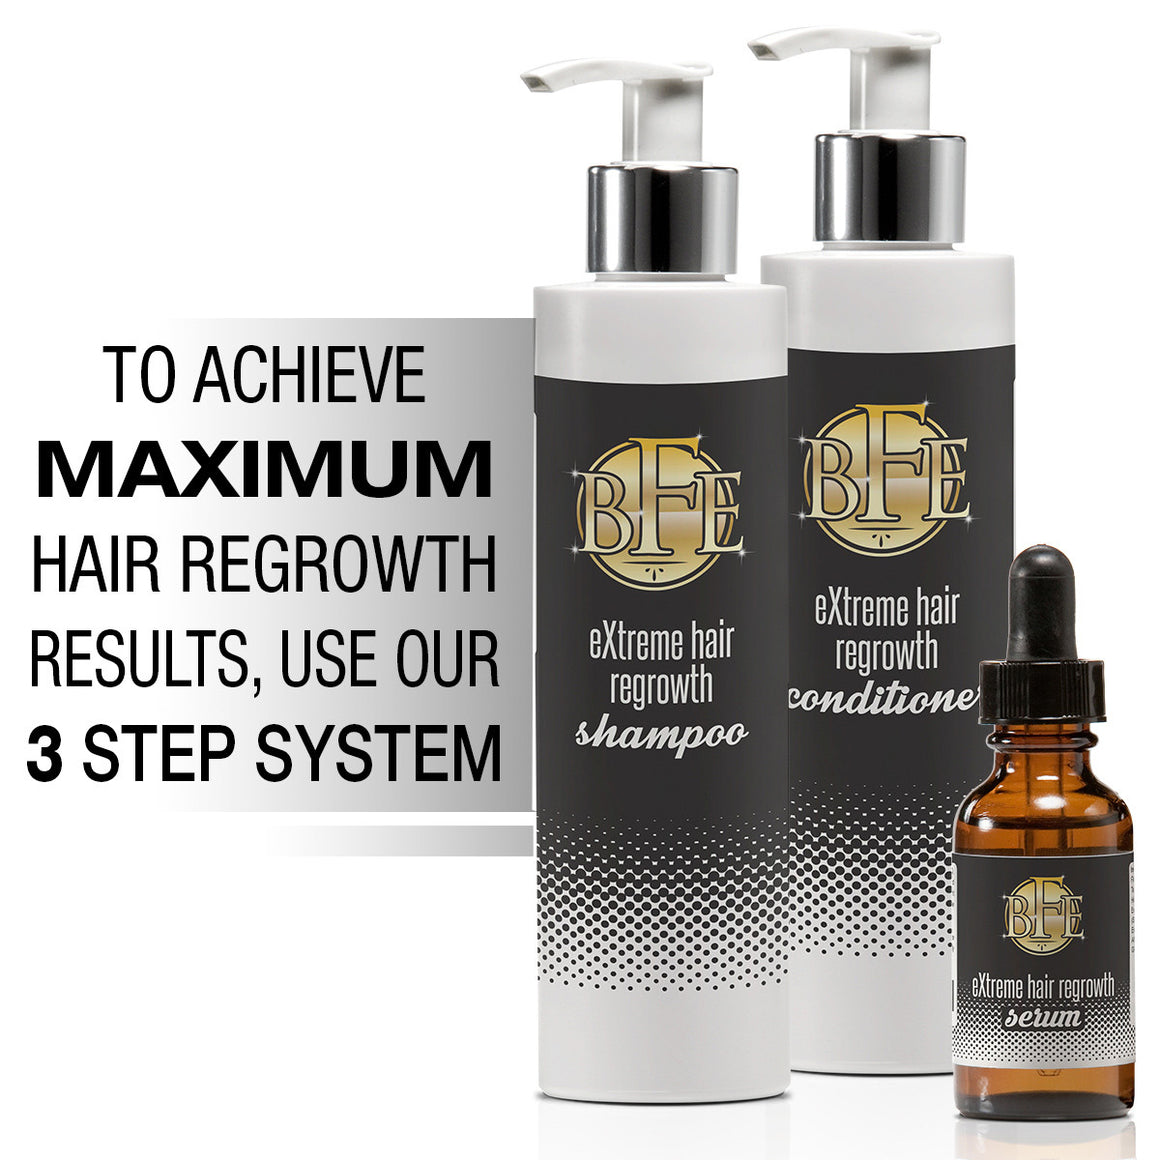 eXtreme Hair Regrowth Shampoo